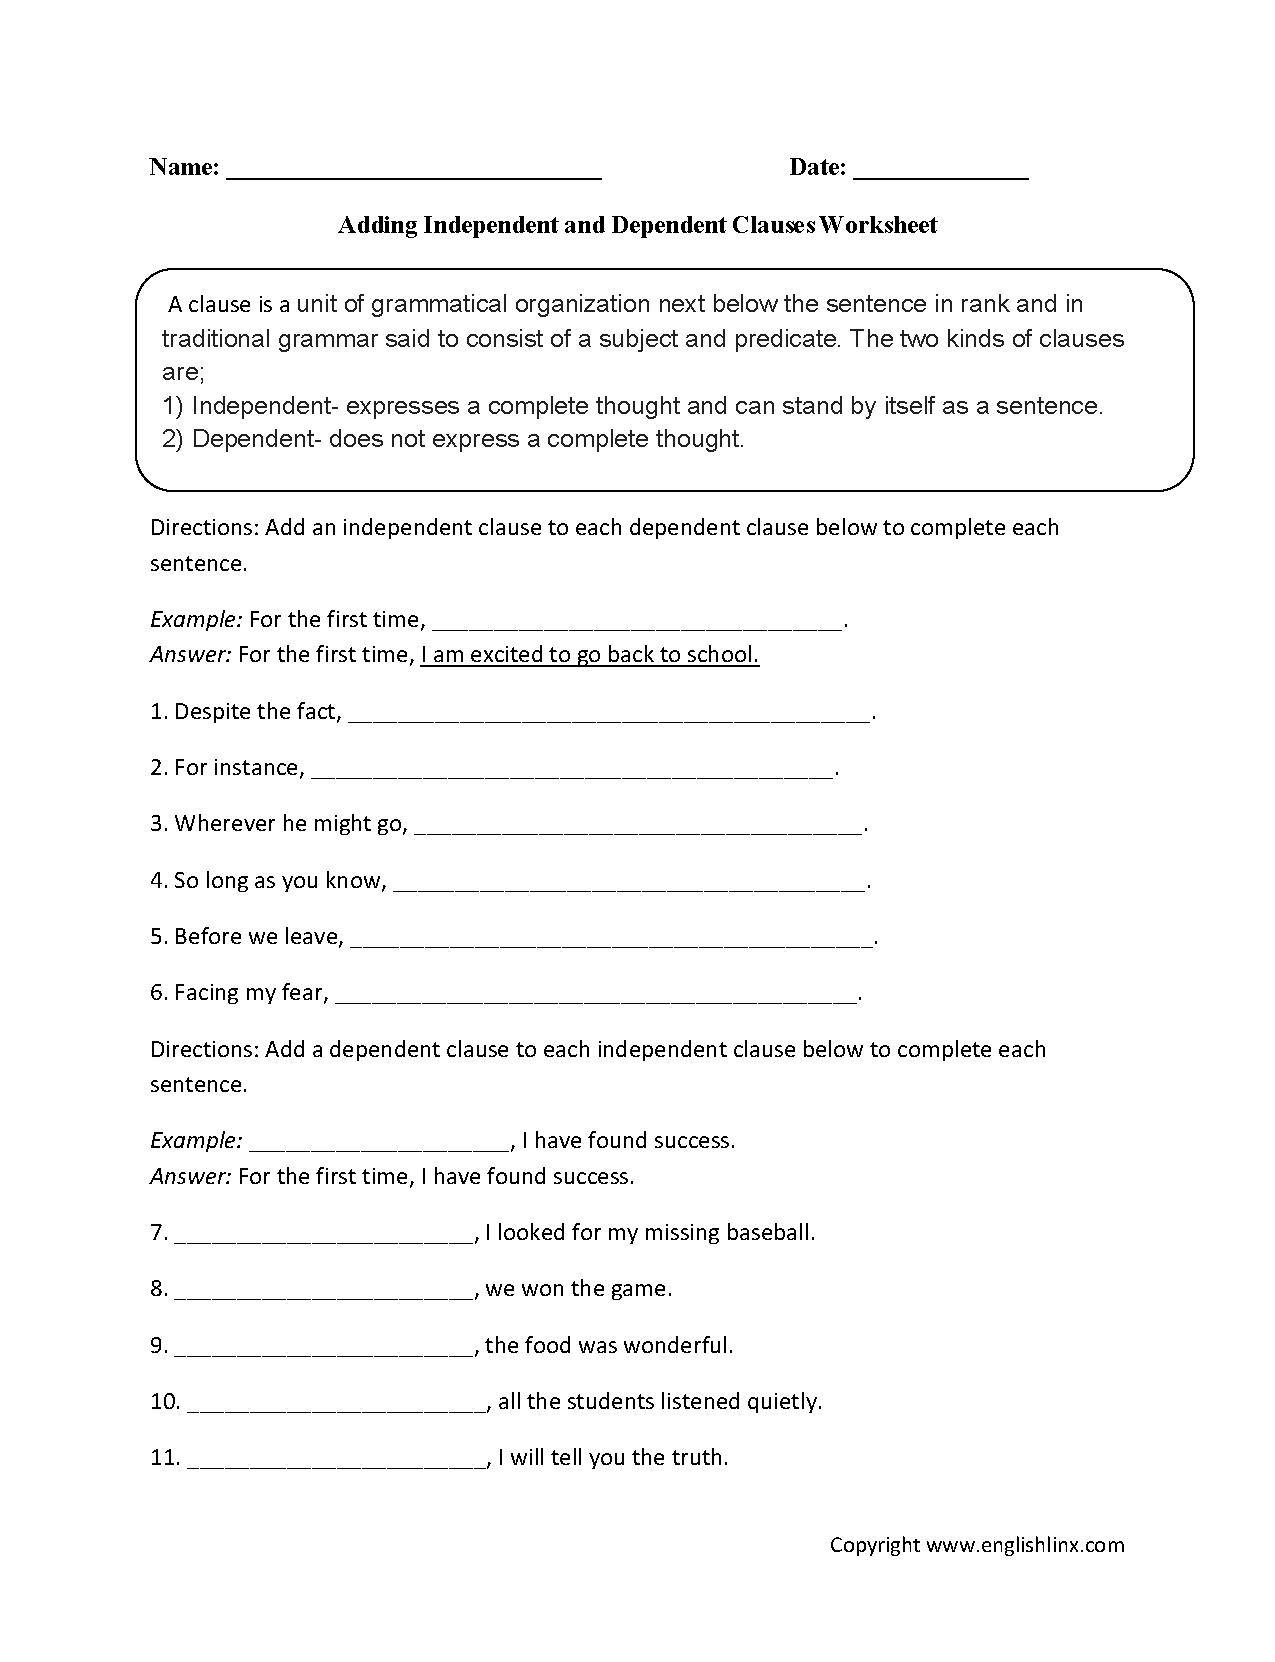 worksheet Comma Usage Worksheet adding dependent and independent clauses worksheet great english worksheet